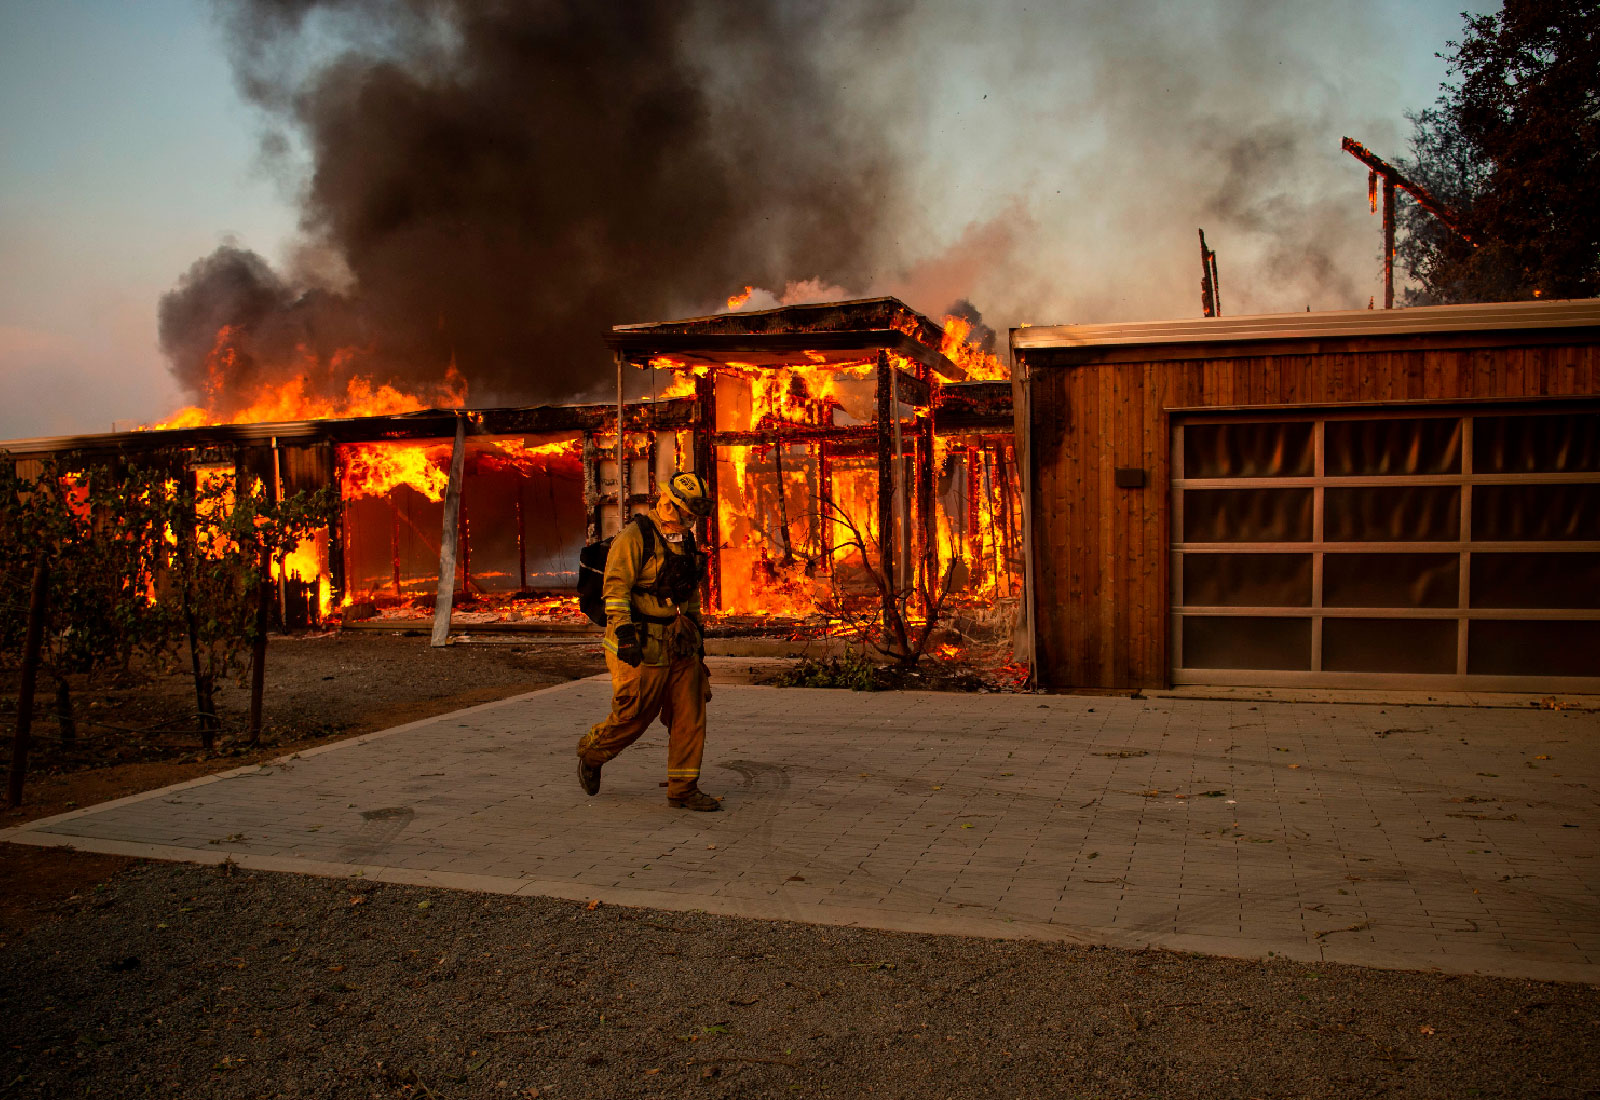 A firefighter walks past a burning house